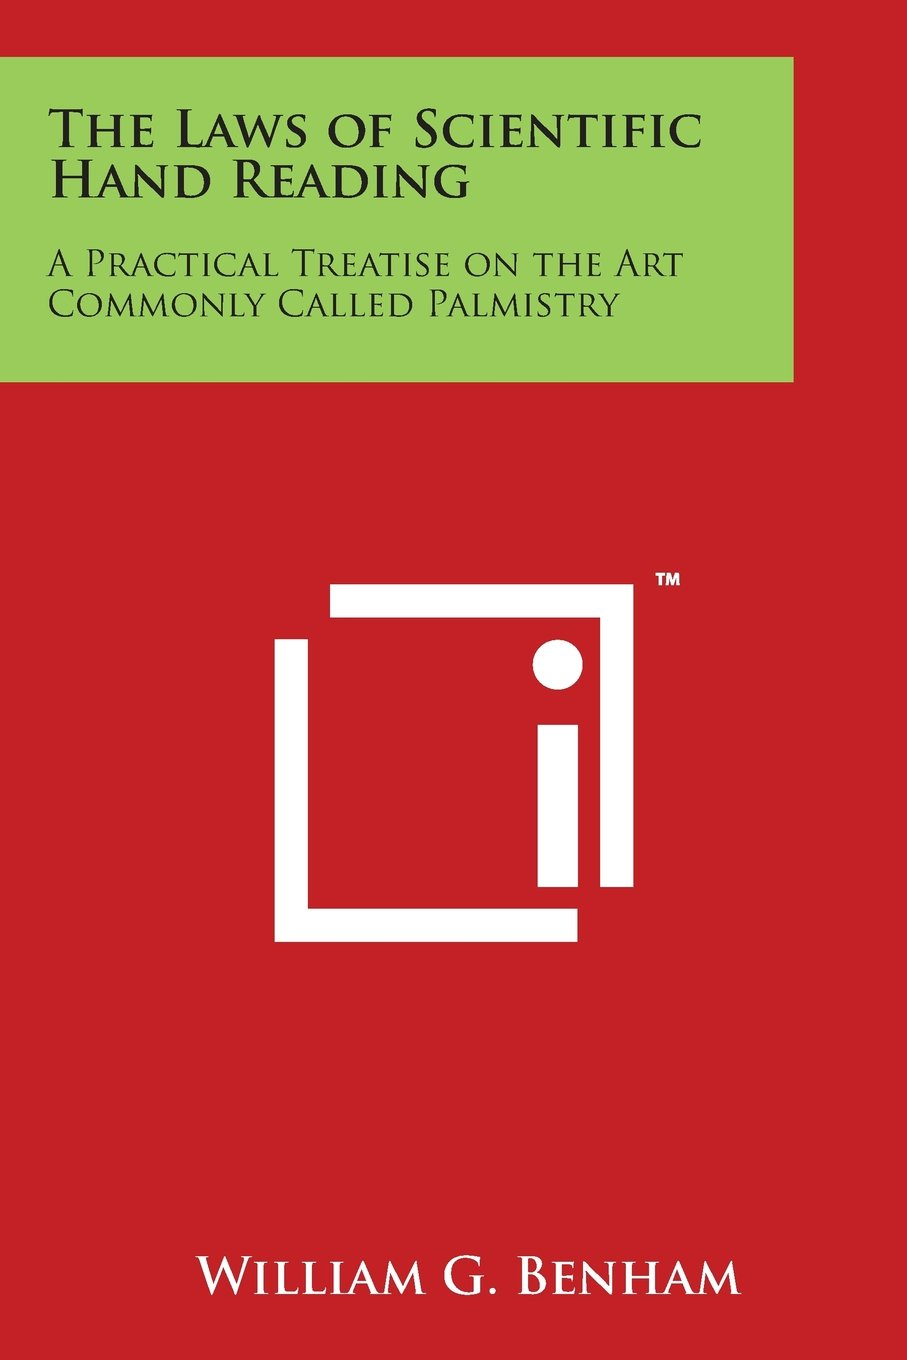 The Laws of Scientific Hand Reading: A Practical Treatise on